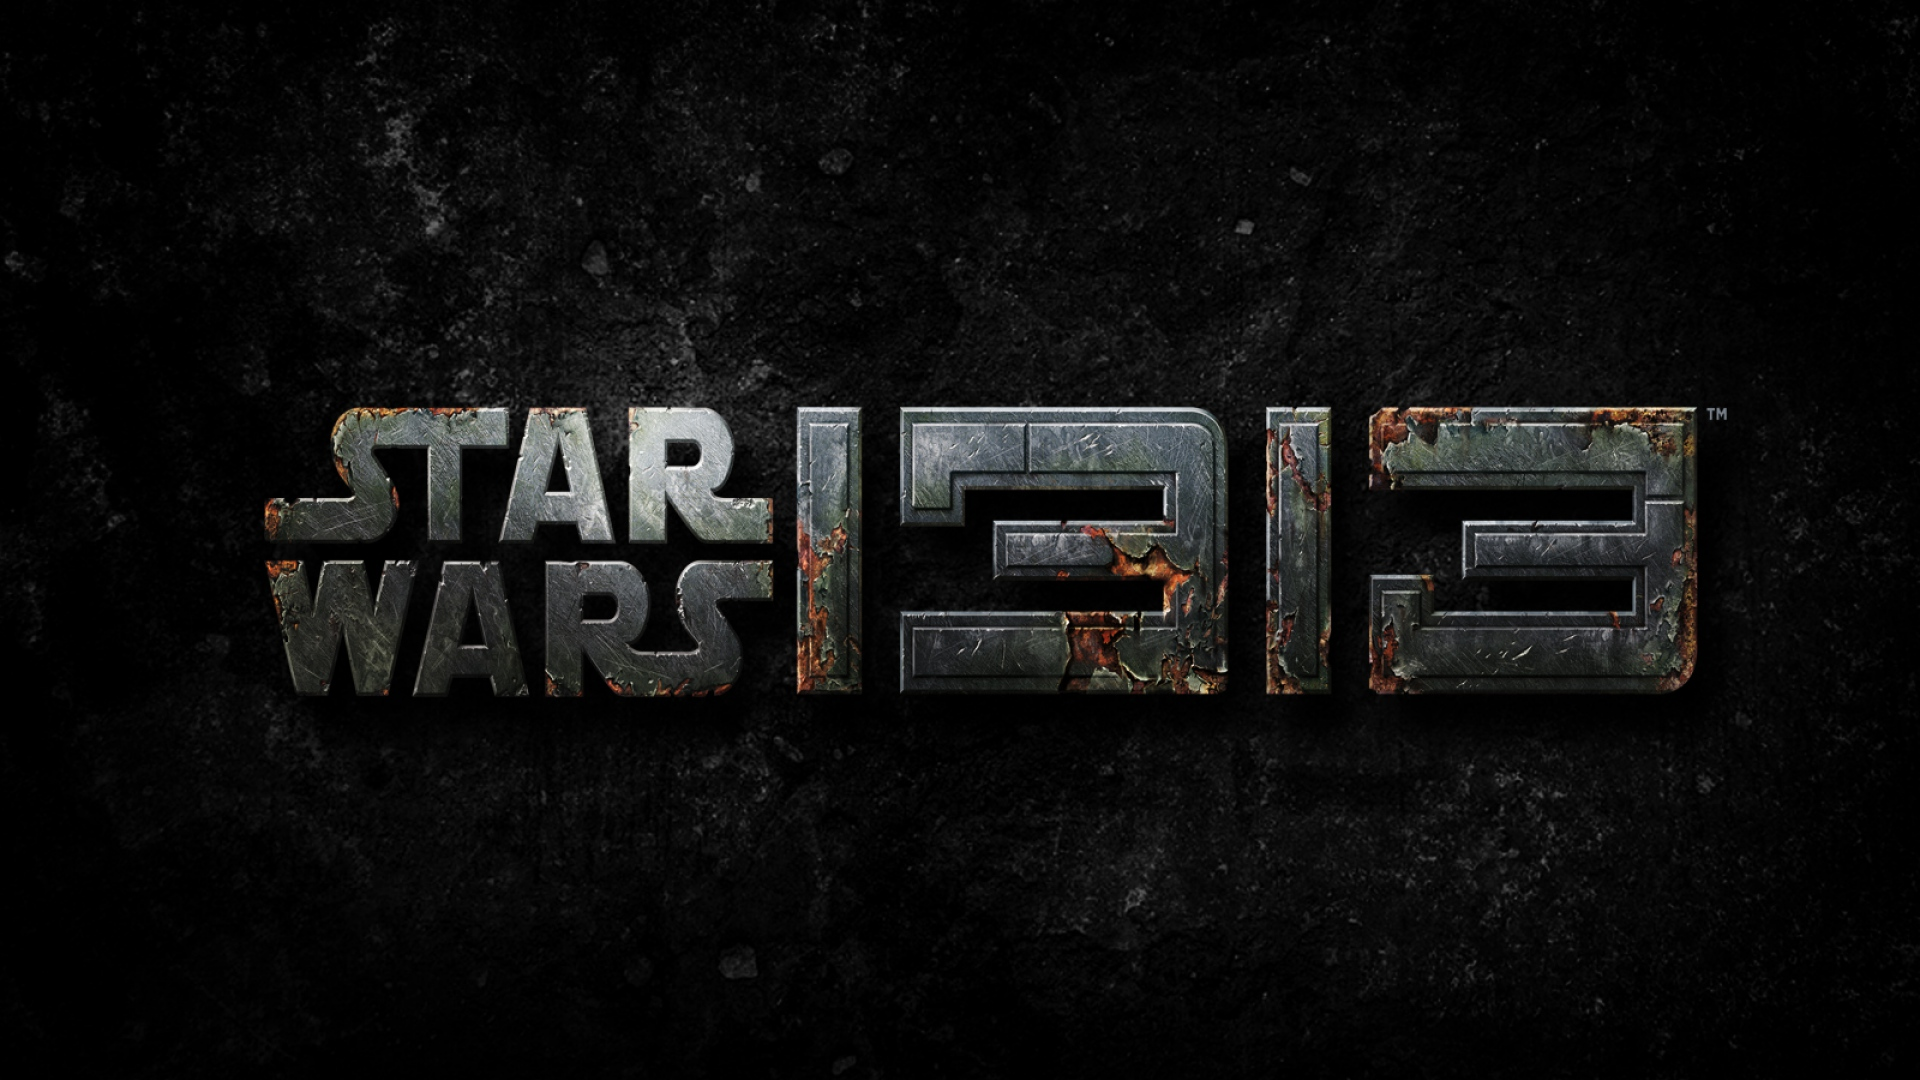 50 Star Wars 2560x1080 Wallpaper On Wallpapersafari